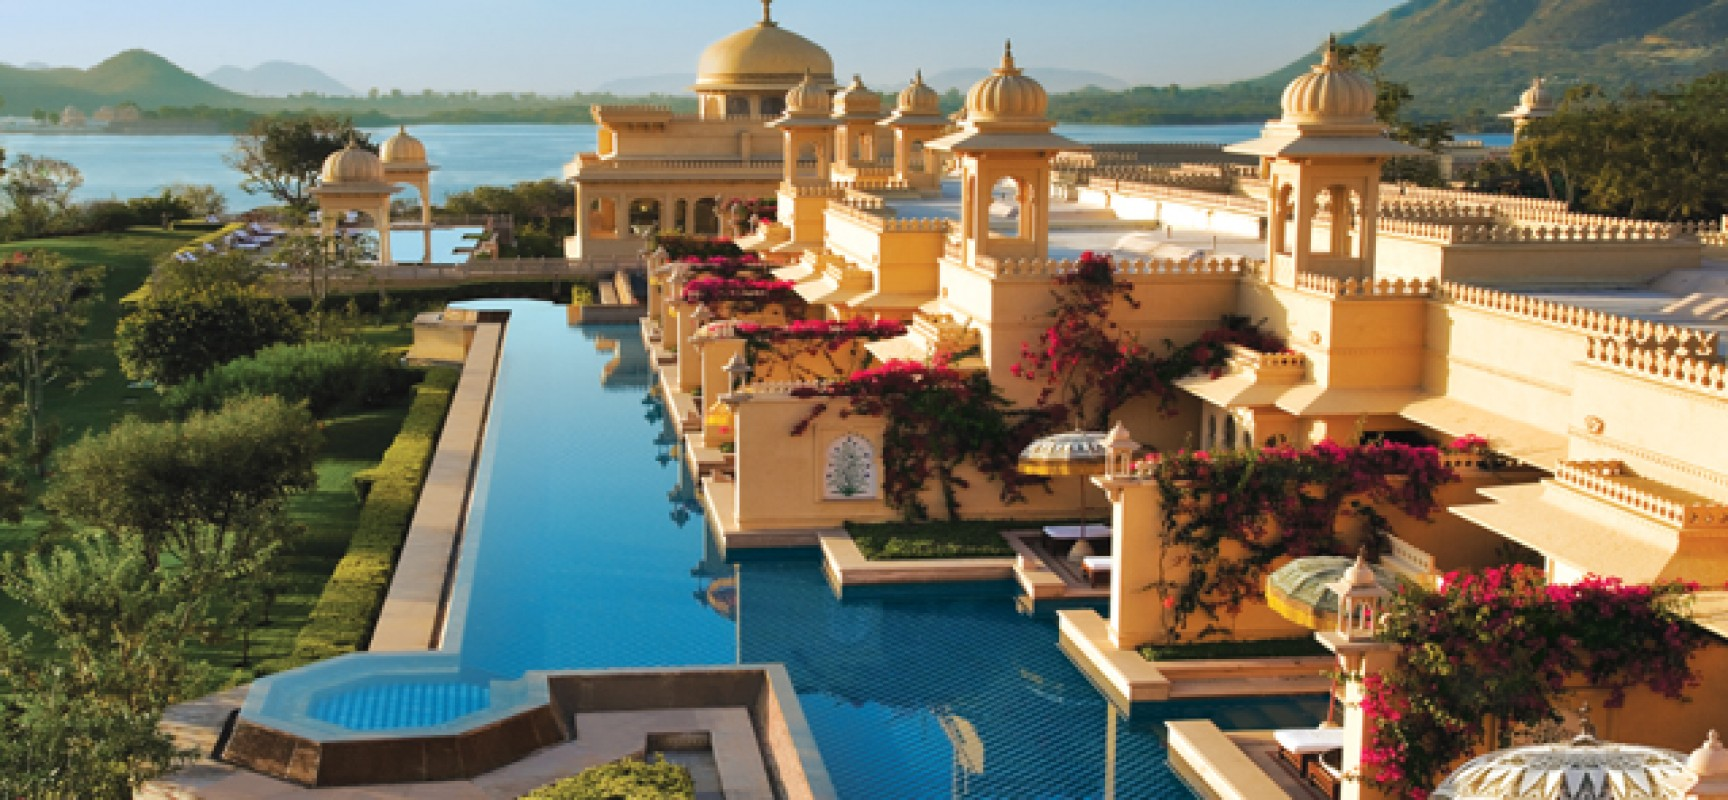 Best hotels you could visit in the world!!